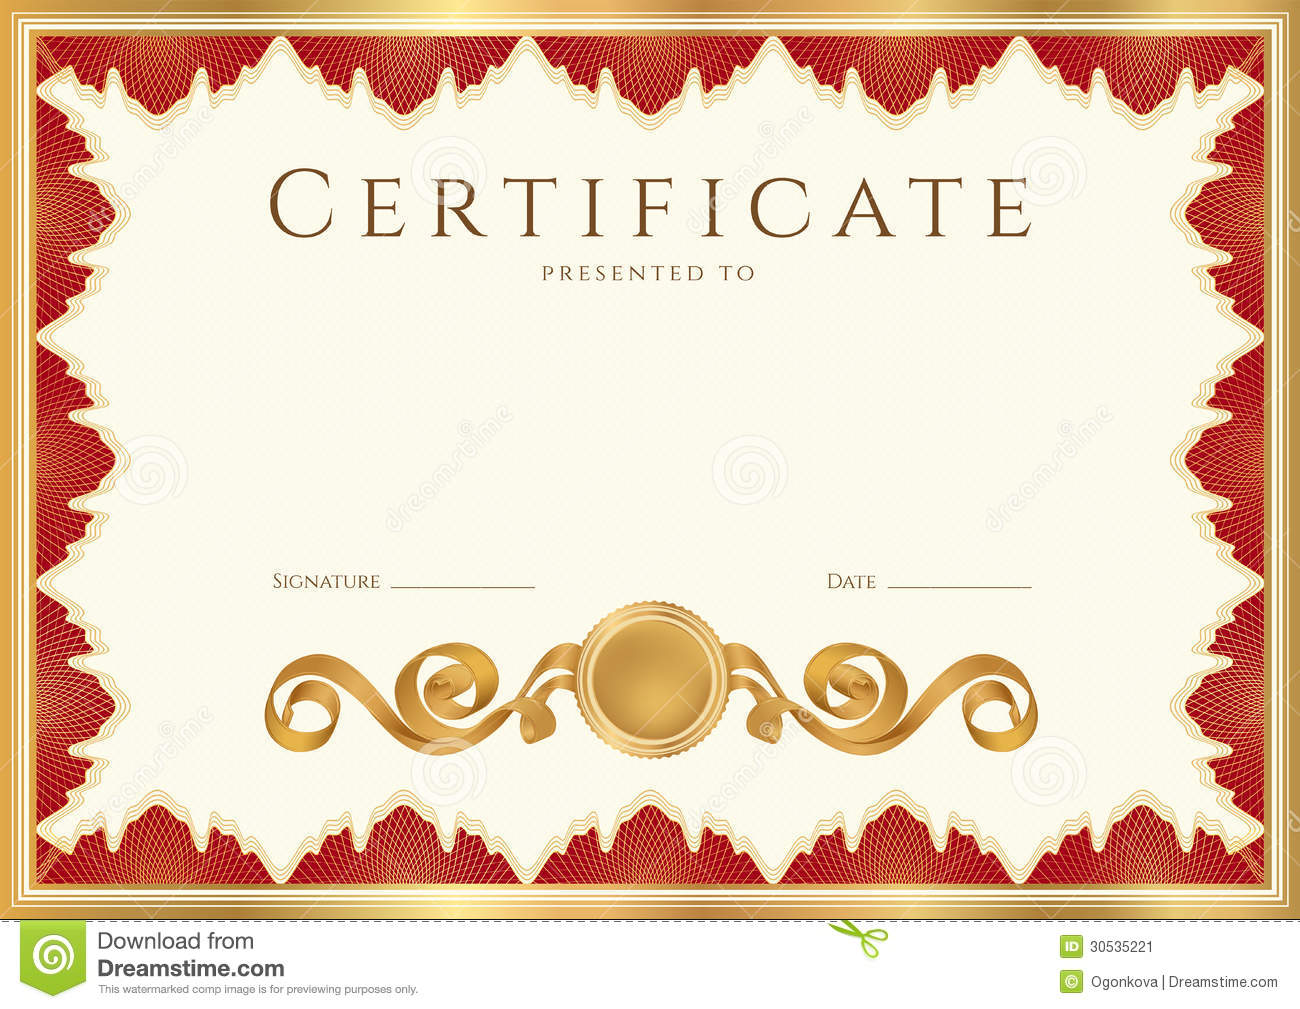 Diploma / Certificate Background With Red Border  Official Certificate Template